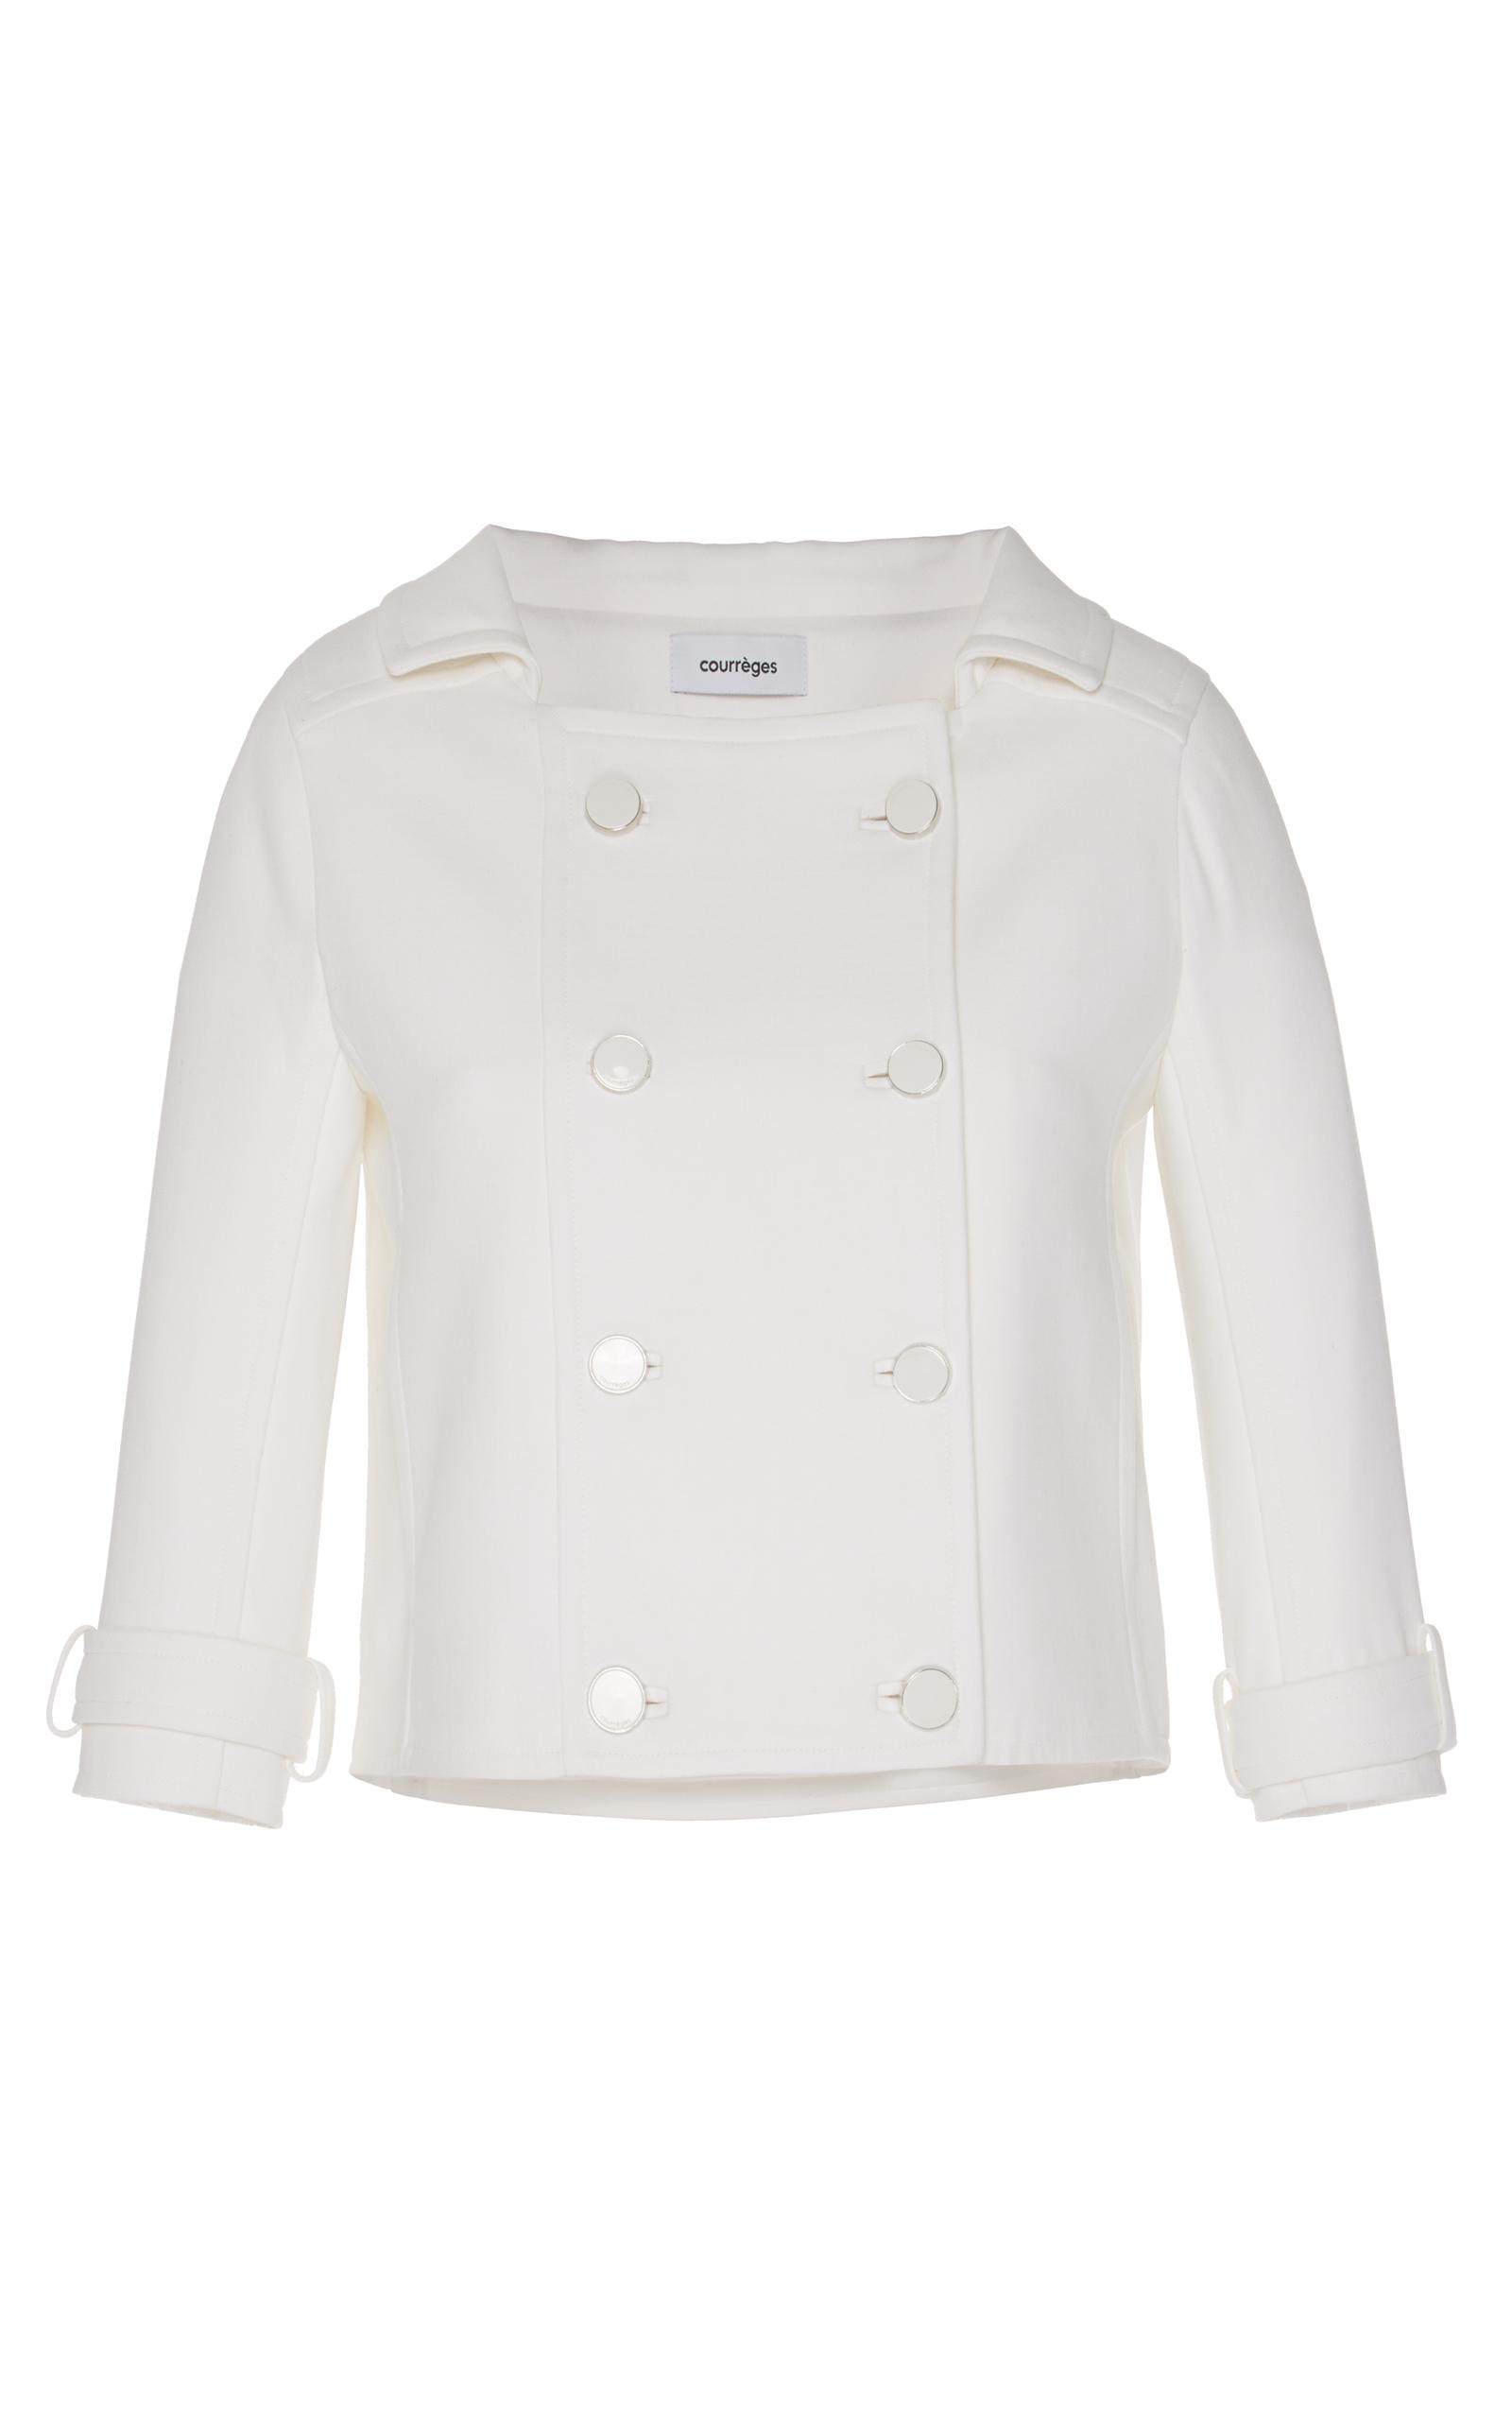 CourrÈges Double Breasted Cropped Jacket In White